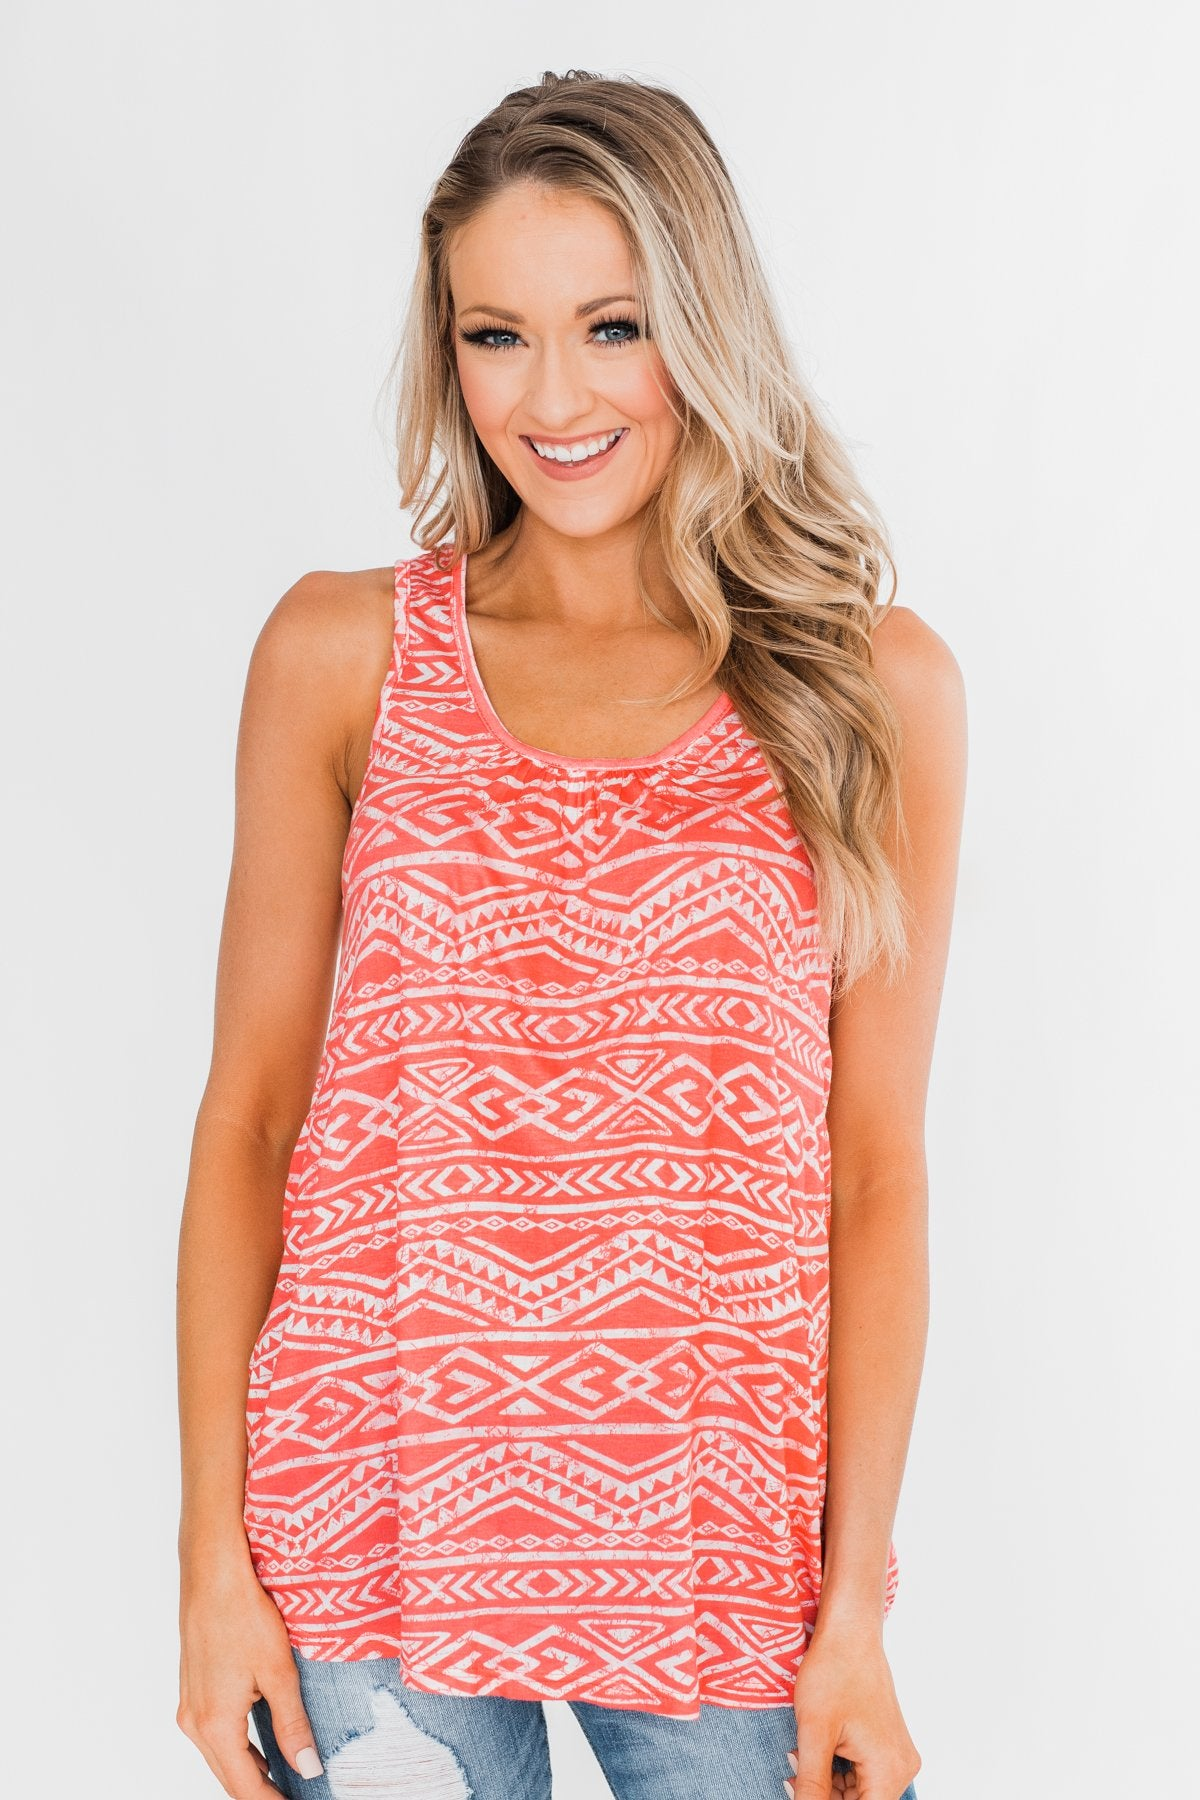 Fill My Days Lace Detailed Tank Top- Soft Coral